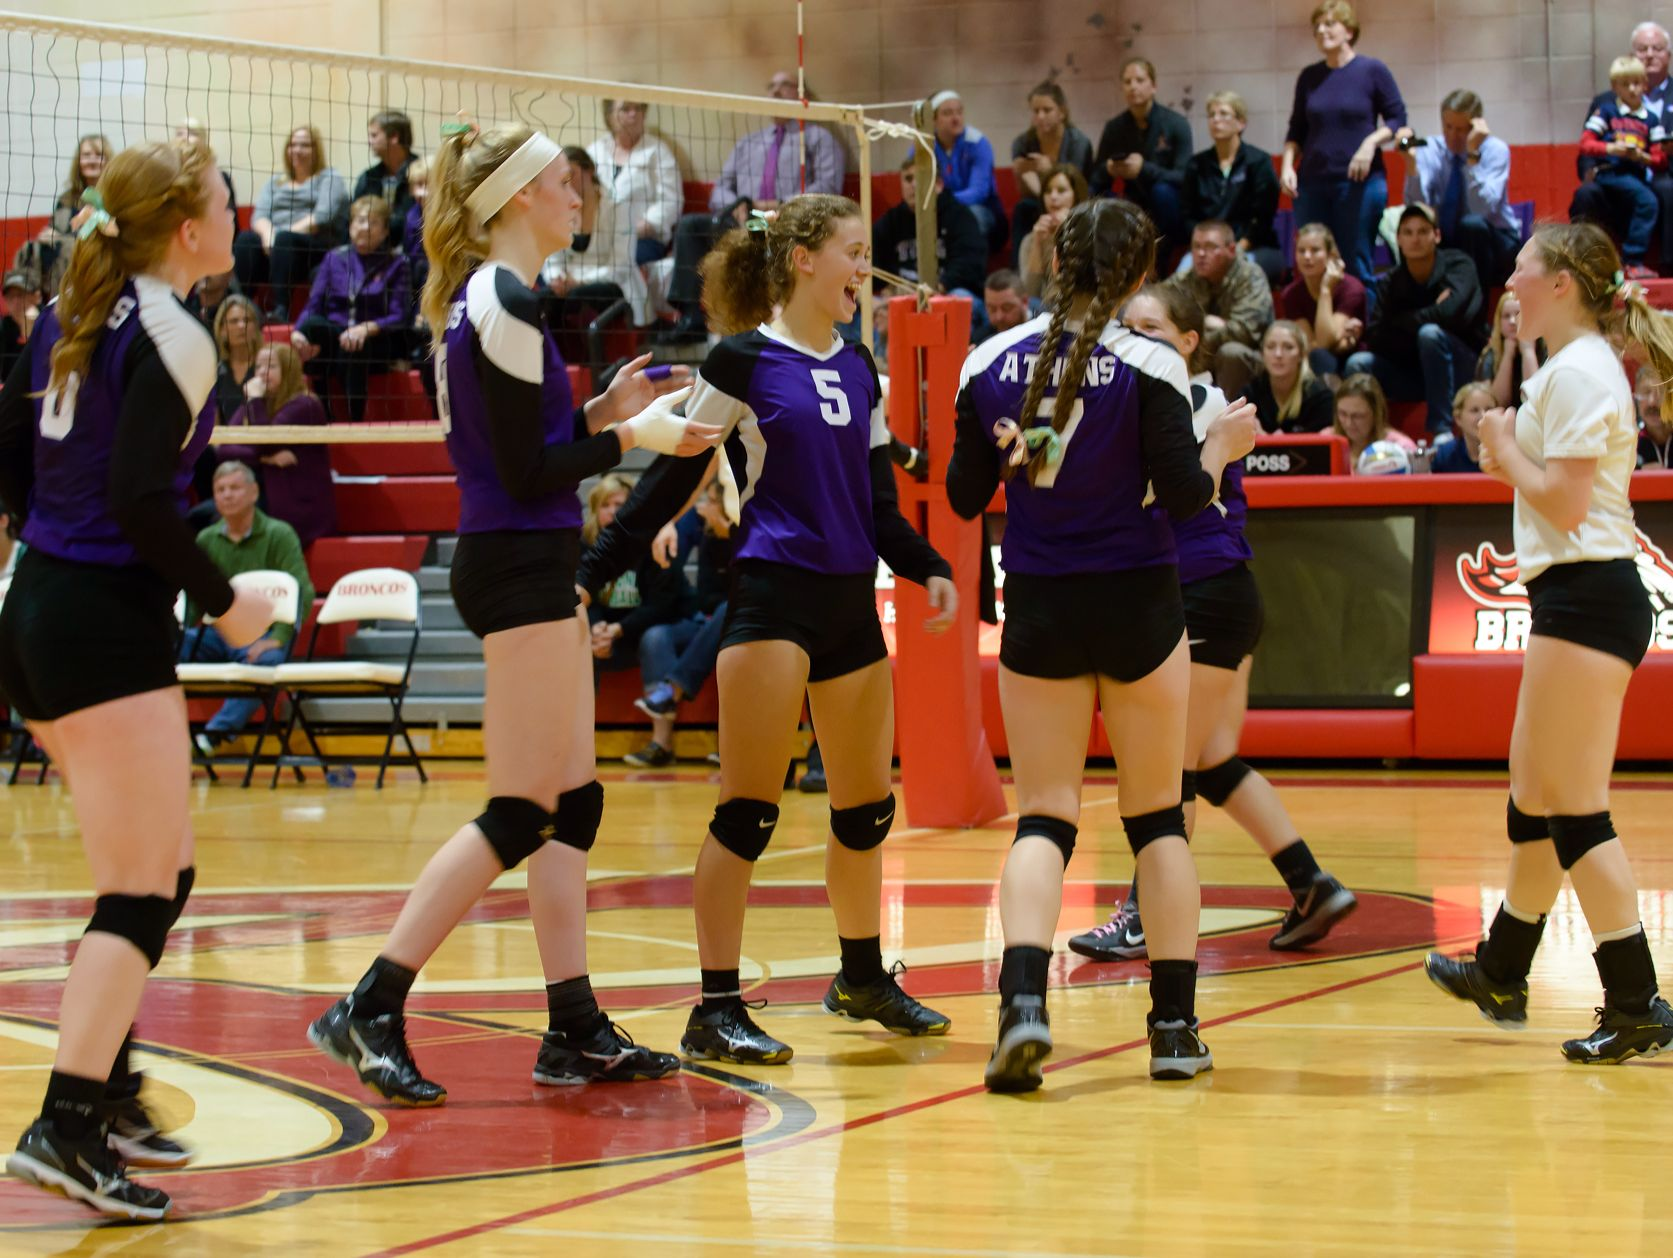 The Athens volleyball team celebrates its Class D regional semifinal victory over St. Joseph Michigan Lutheran on Tuesday night at Bellevue High School.